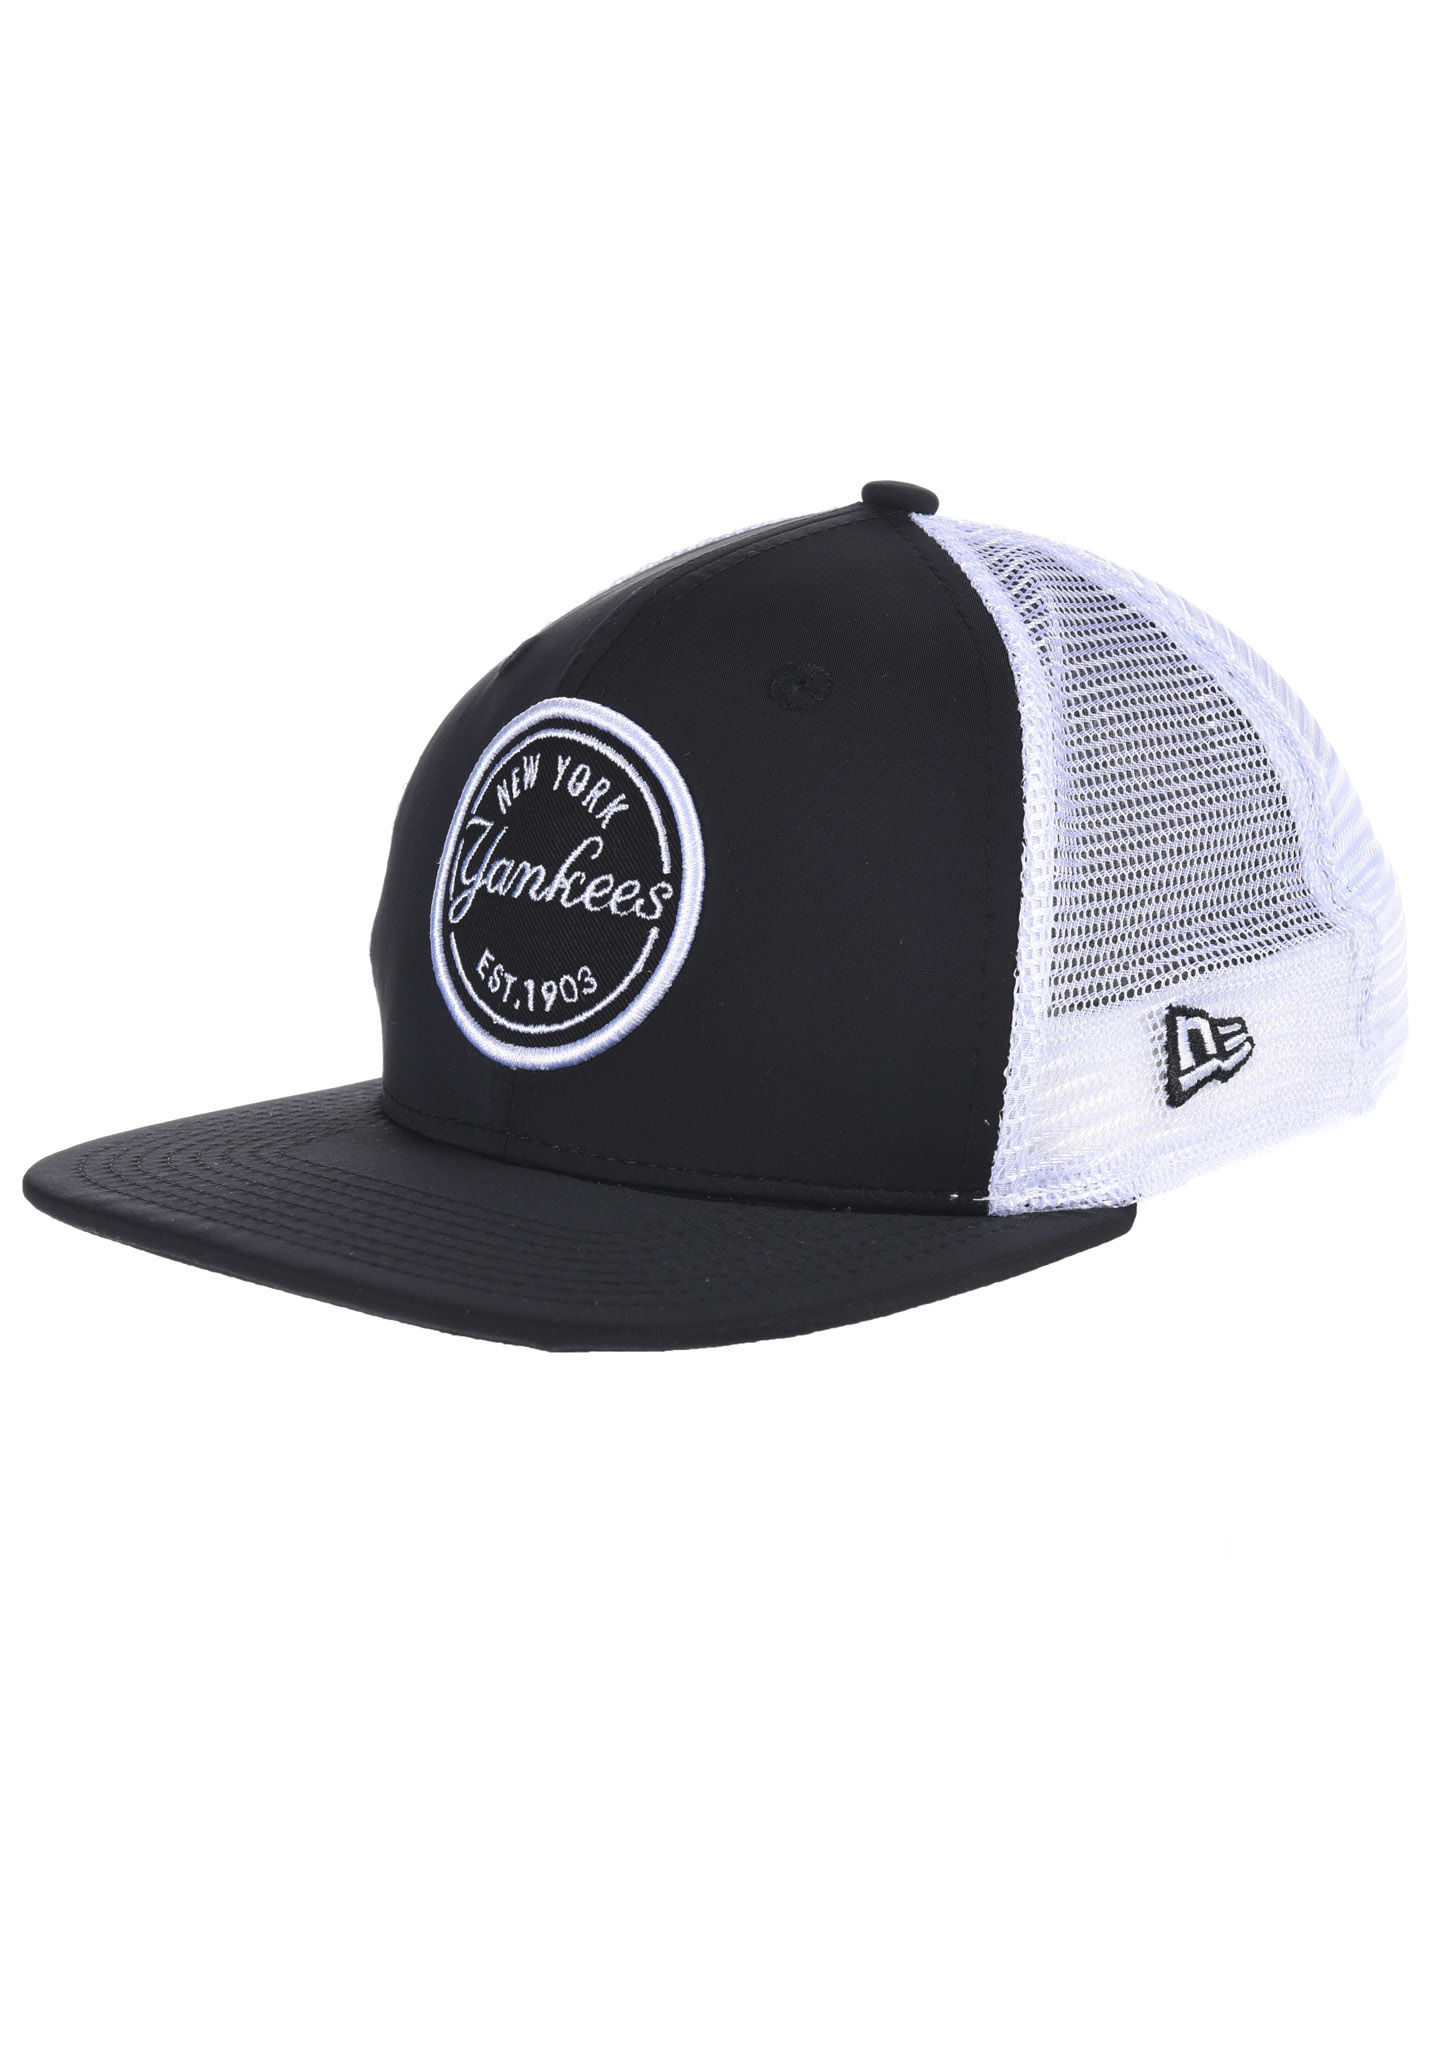 422ad50debaf8 NEW Era 9Fifty New York Yankees - Trucker Cap - Black - Planet Sports